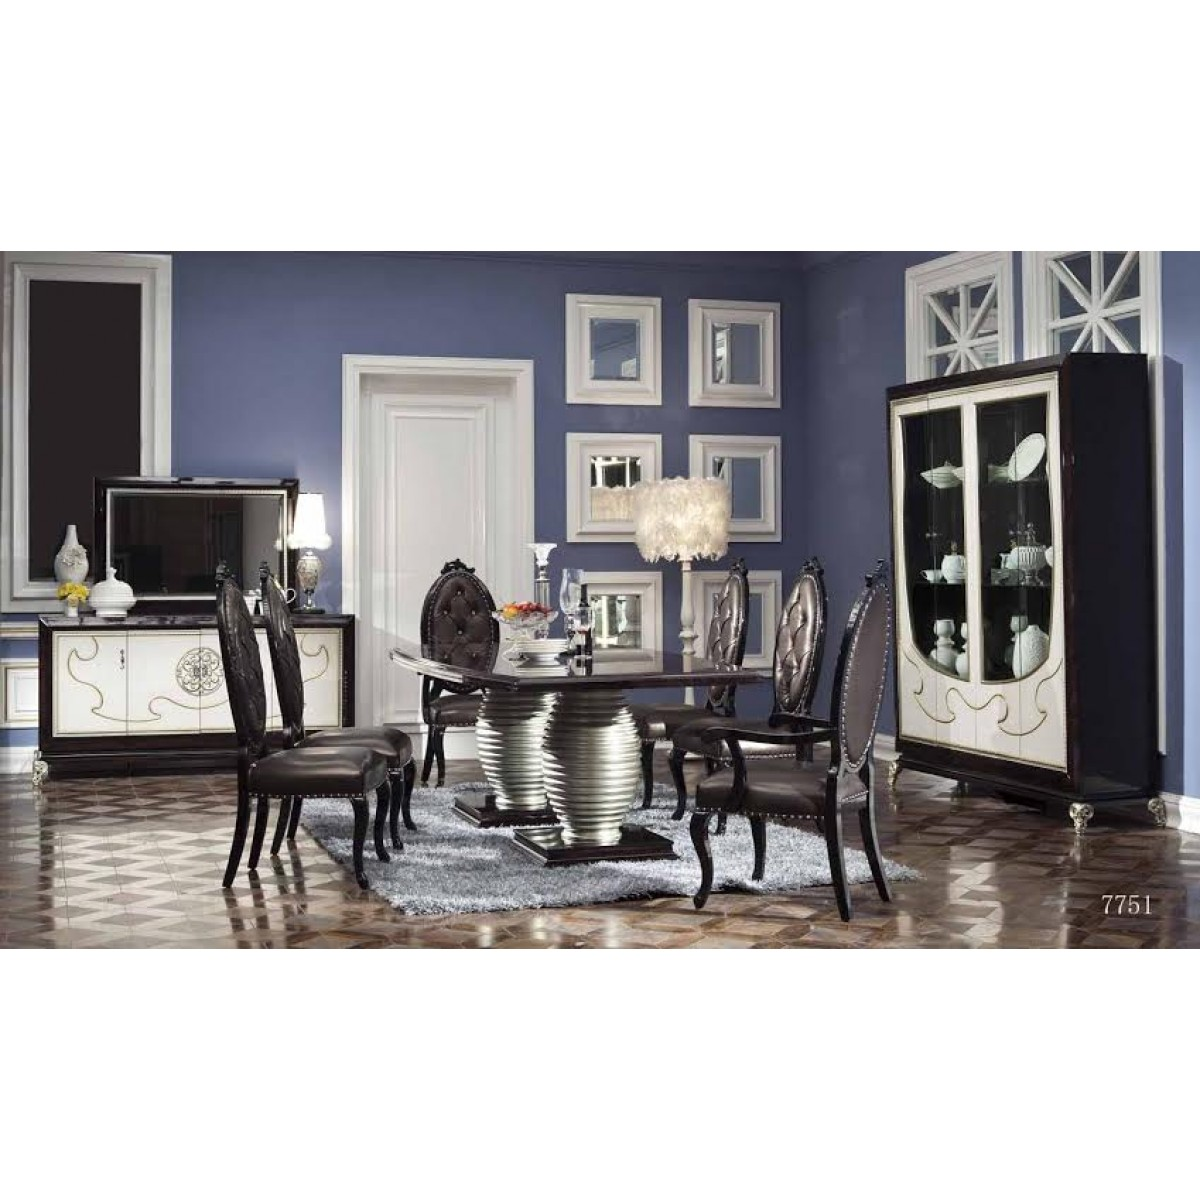 Dining Set Dresser Buffet SM 7751